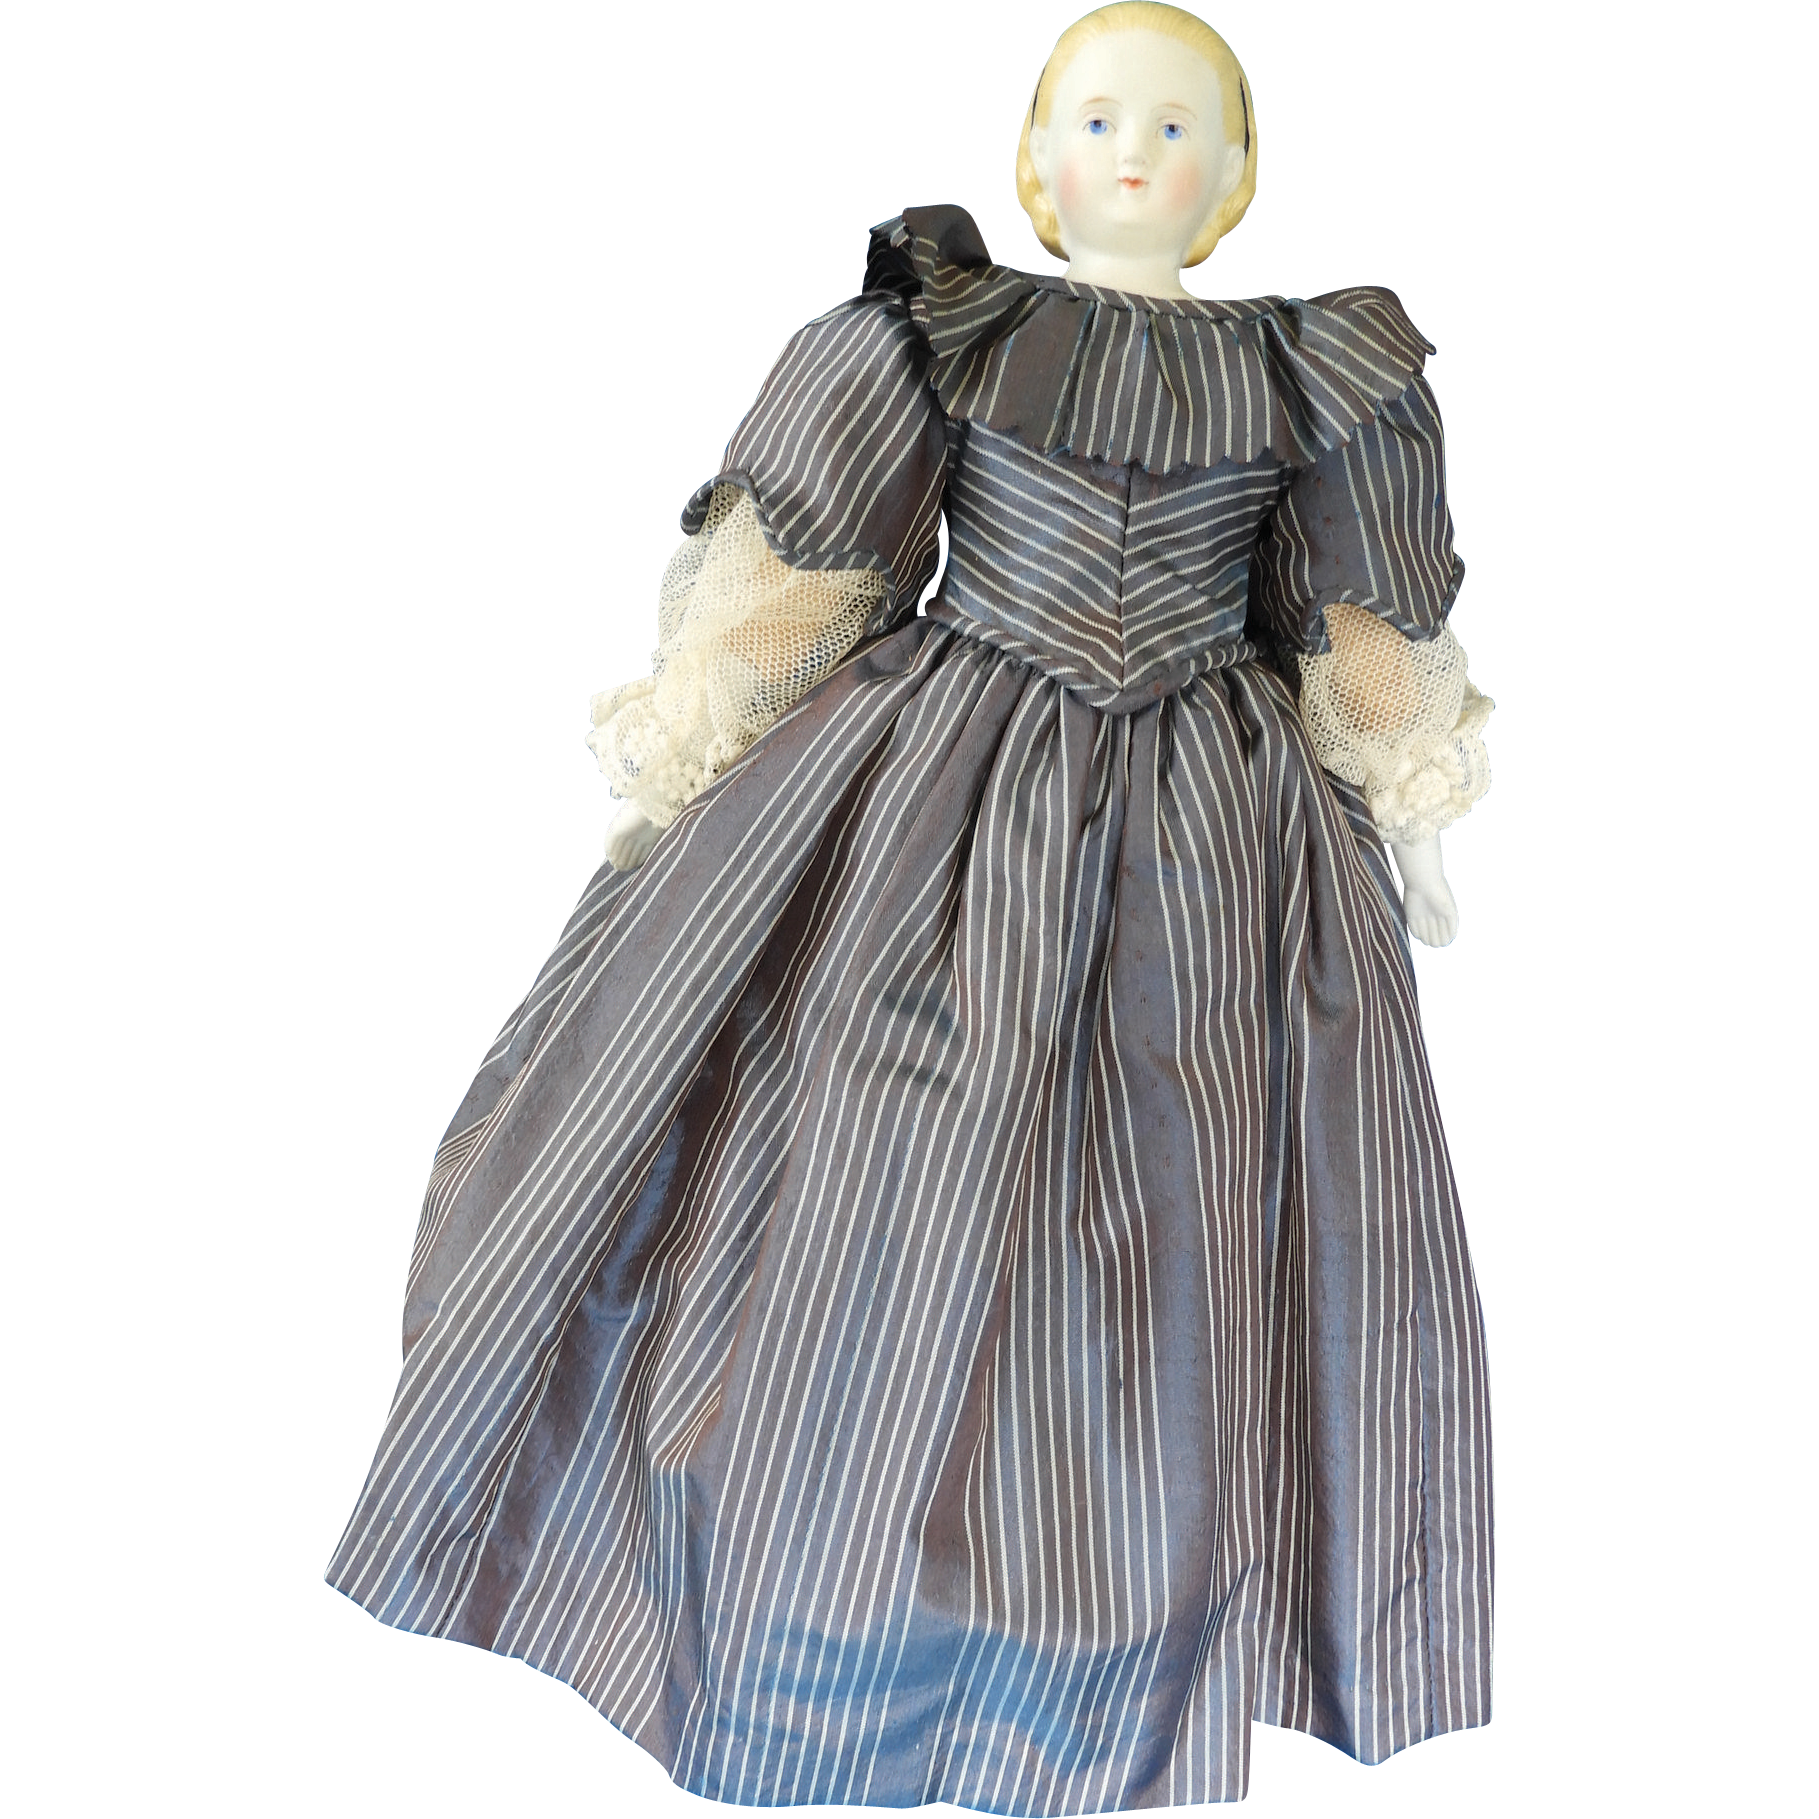 Cabinet-size Untinted Bisque (Parian) Alice-style Lady doll